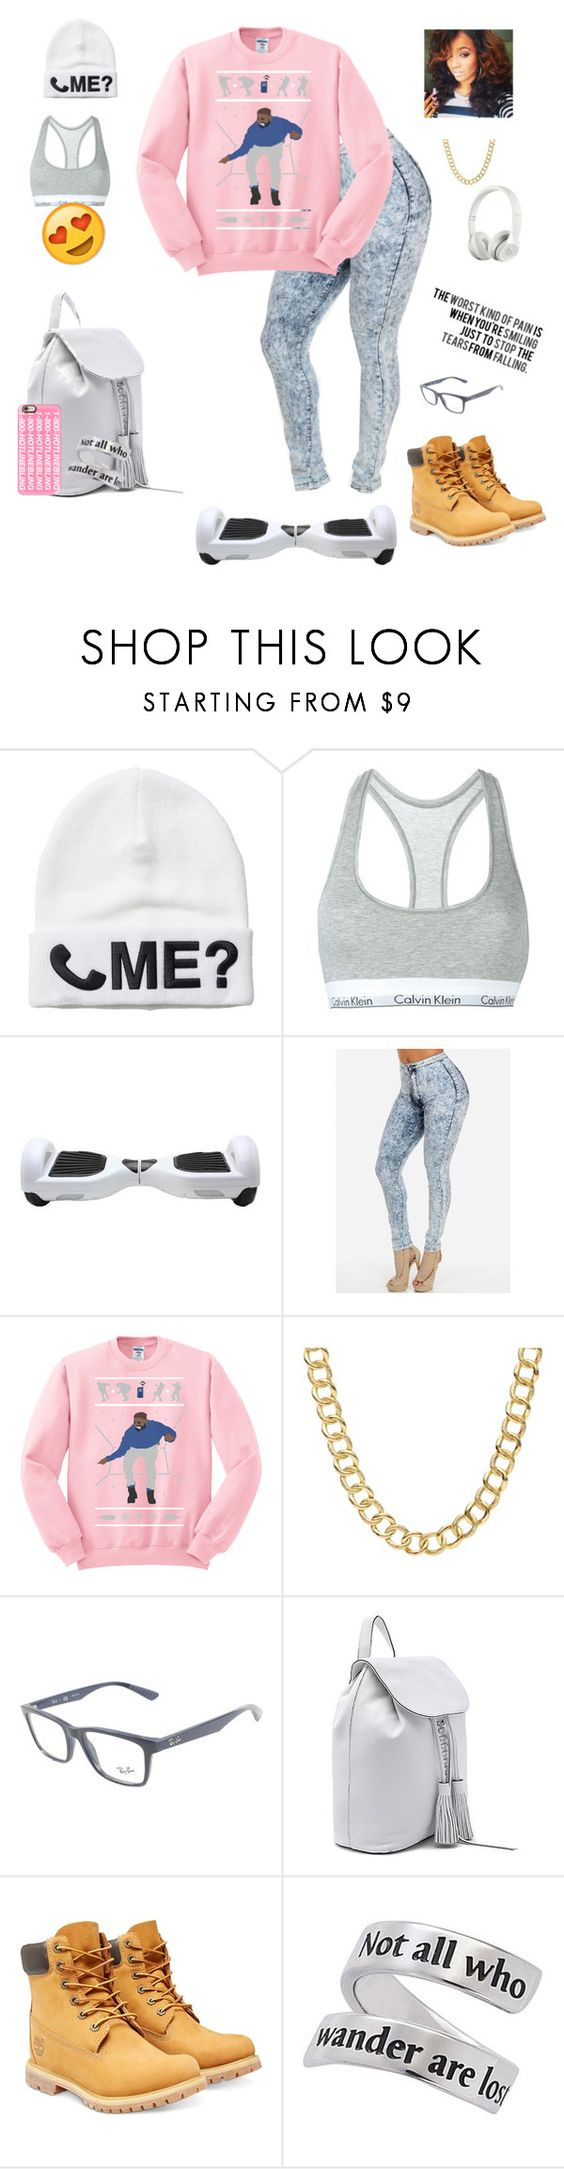 """""""Just something. Hotline tired. """" by misfit4life13 ❤ liked on Polyvore featuring Monki, Calvin Klein Underwear, Beats by Dr. Dre, Coach, Ray-Ban, Love Quotes Scarves, Rebecca Minkoff, Timberland, Natures Jewelry and Casetify"""